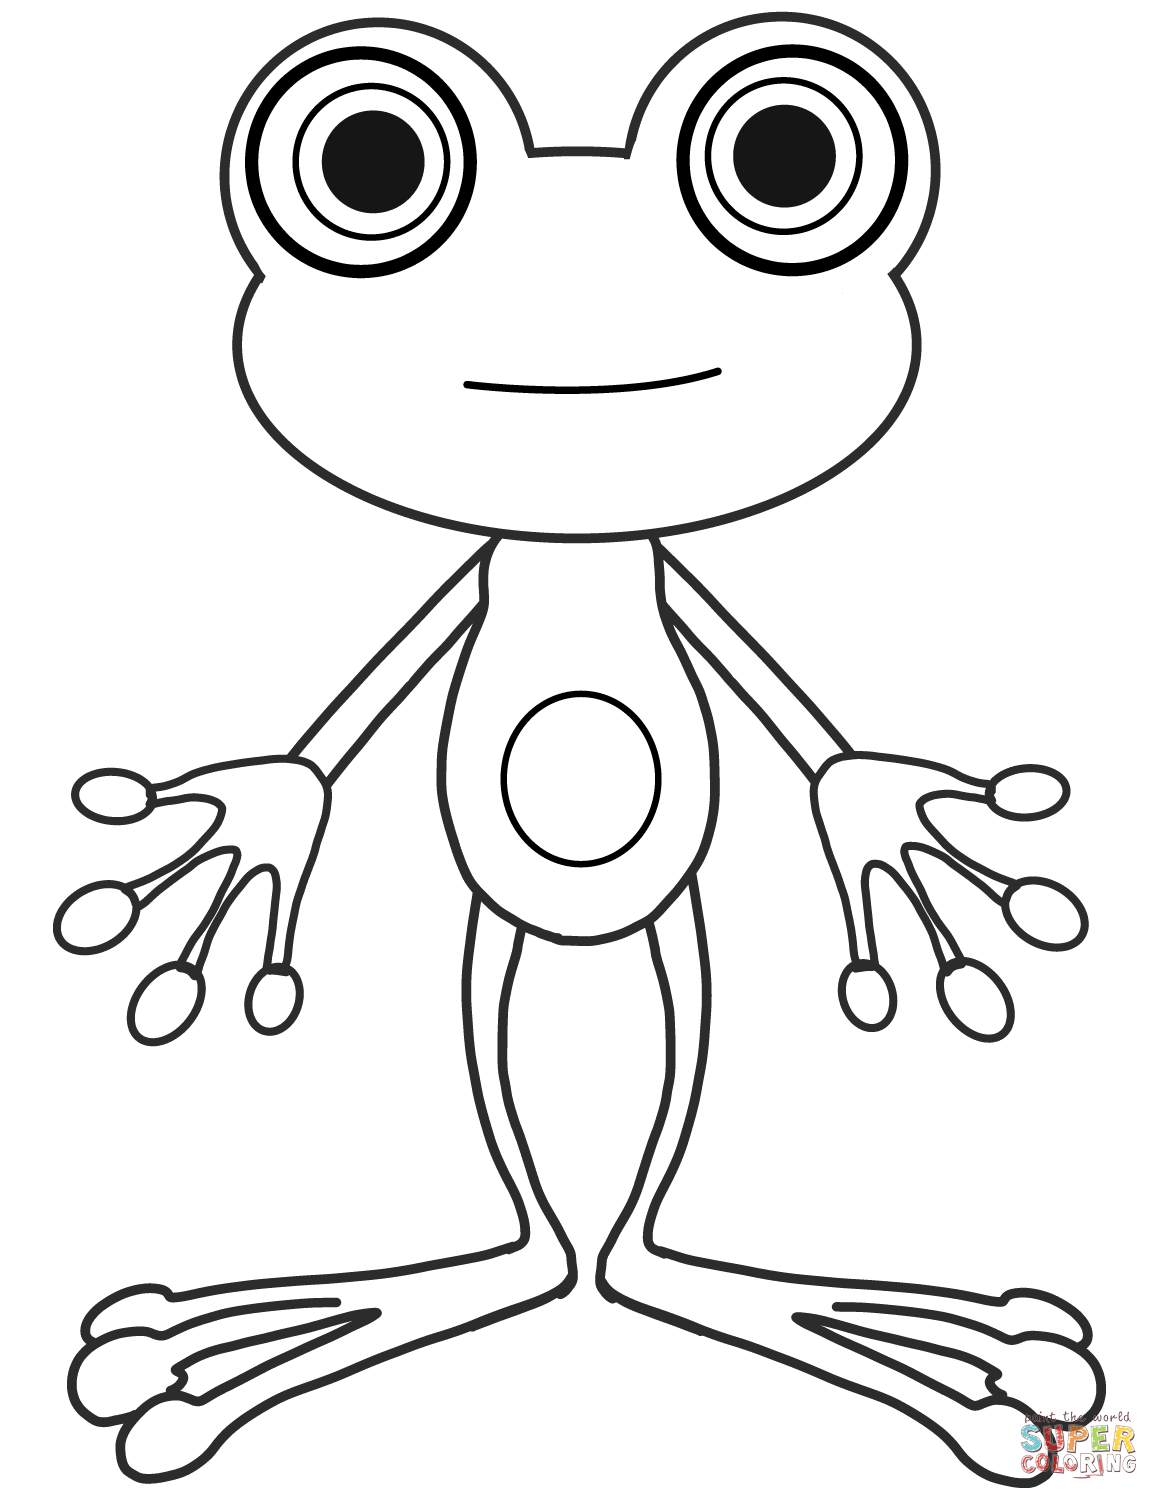 Color Worksheet Of A Tree Frog